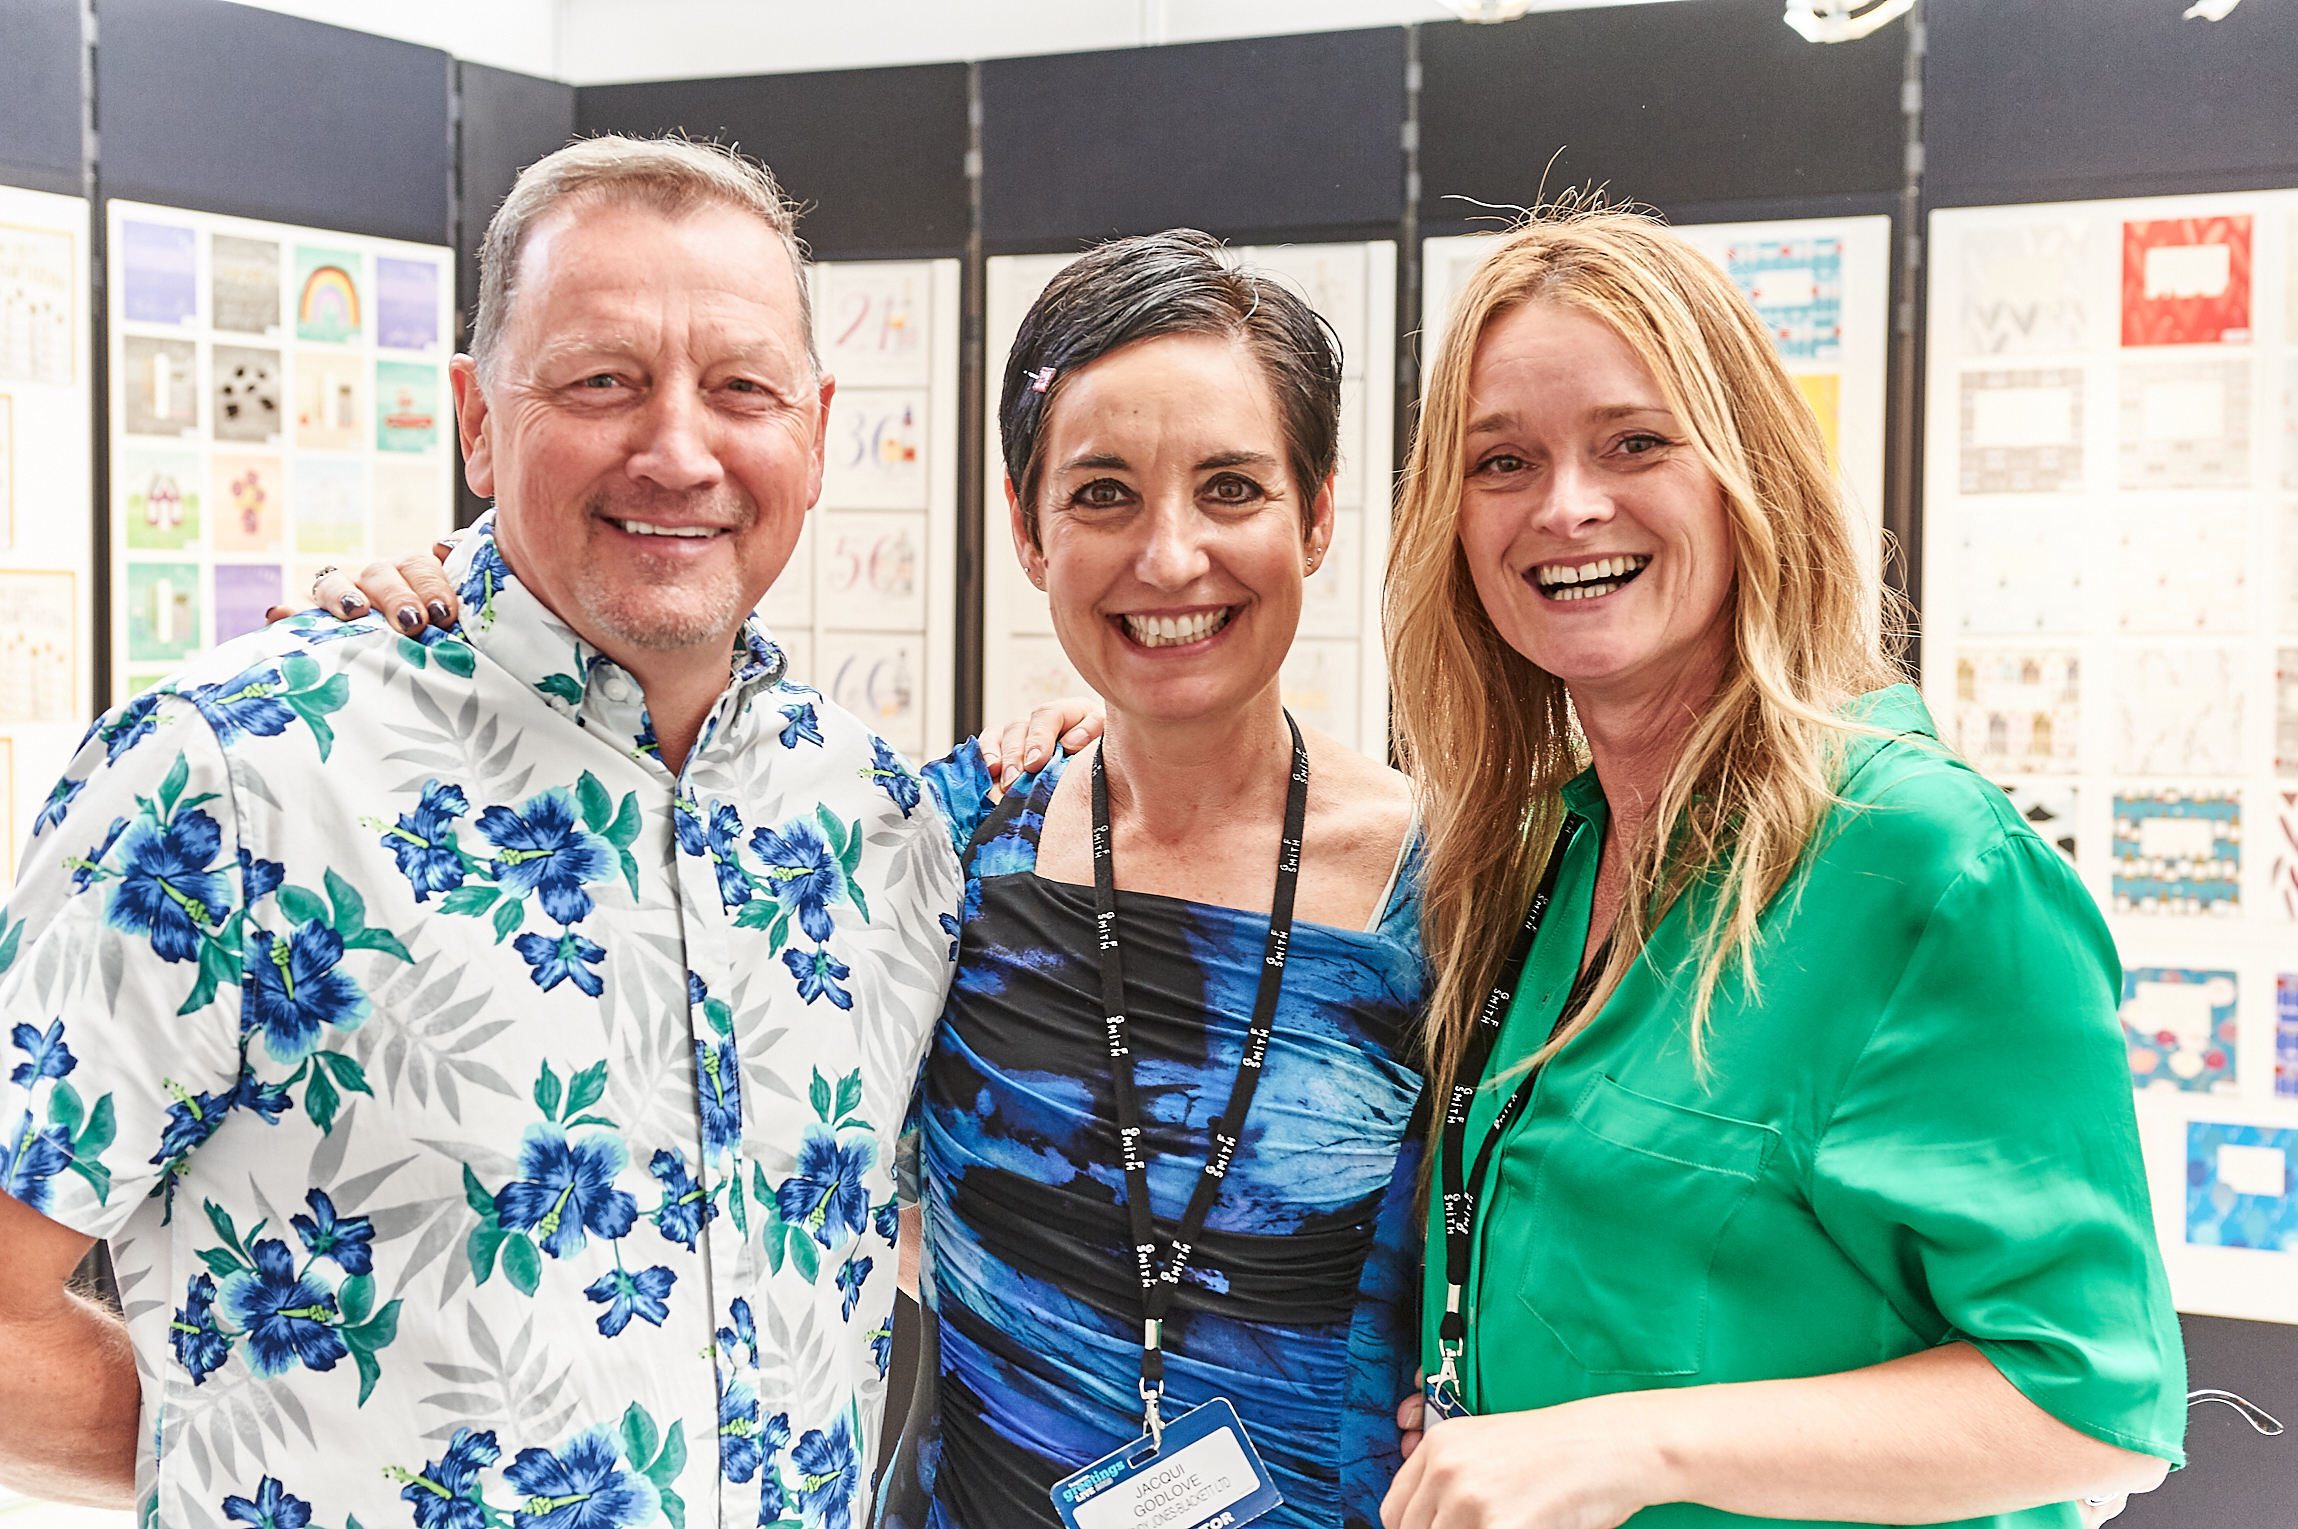 Above: Wendy Jones-Blackett (right) with colleague Jacqui Godlove and agent Nigel Spensley at PG Live.